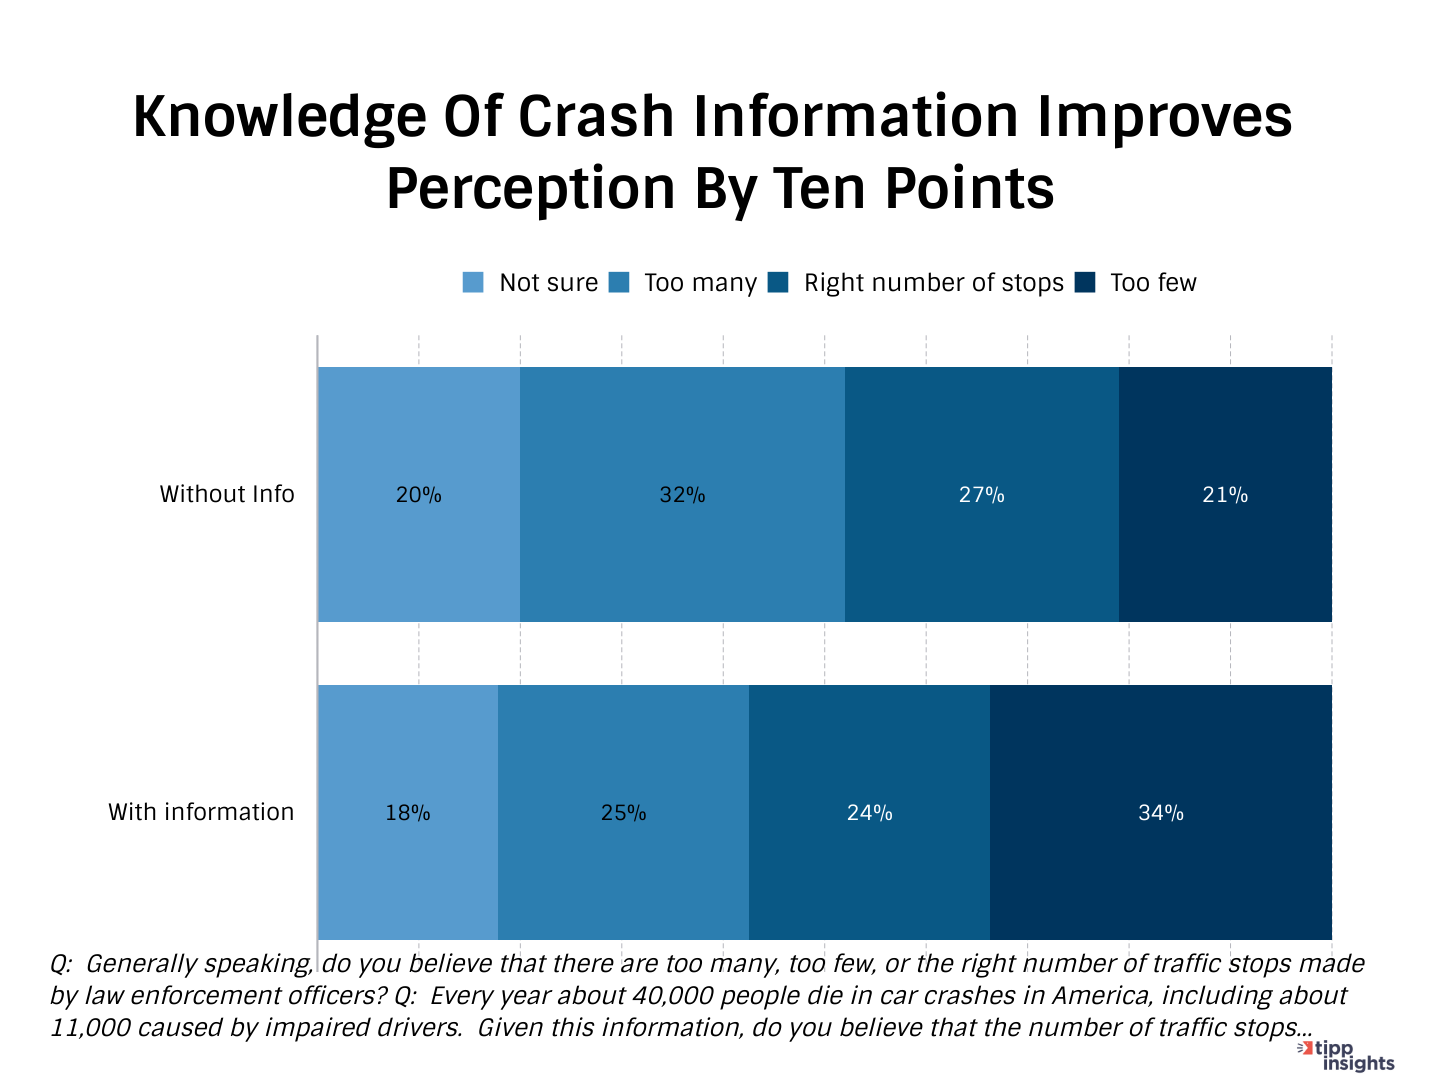 TIPP Poll Results Chart 1:  Knowledge of crash info improves perception by ten points